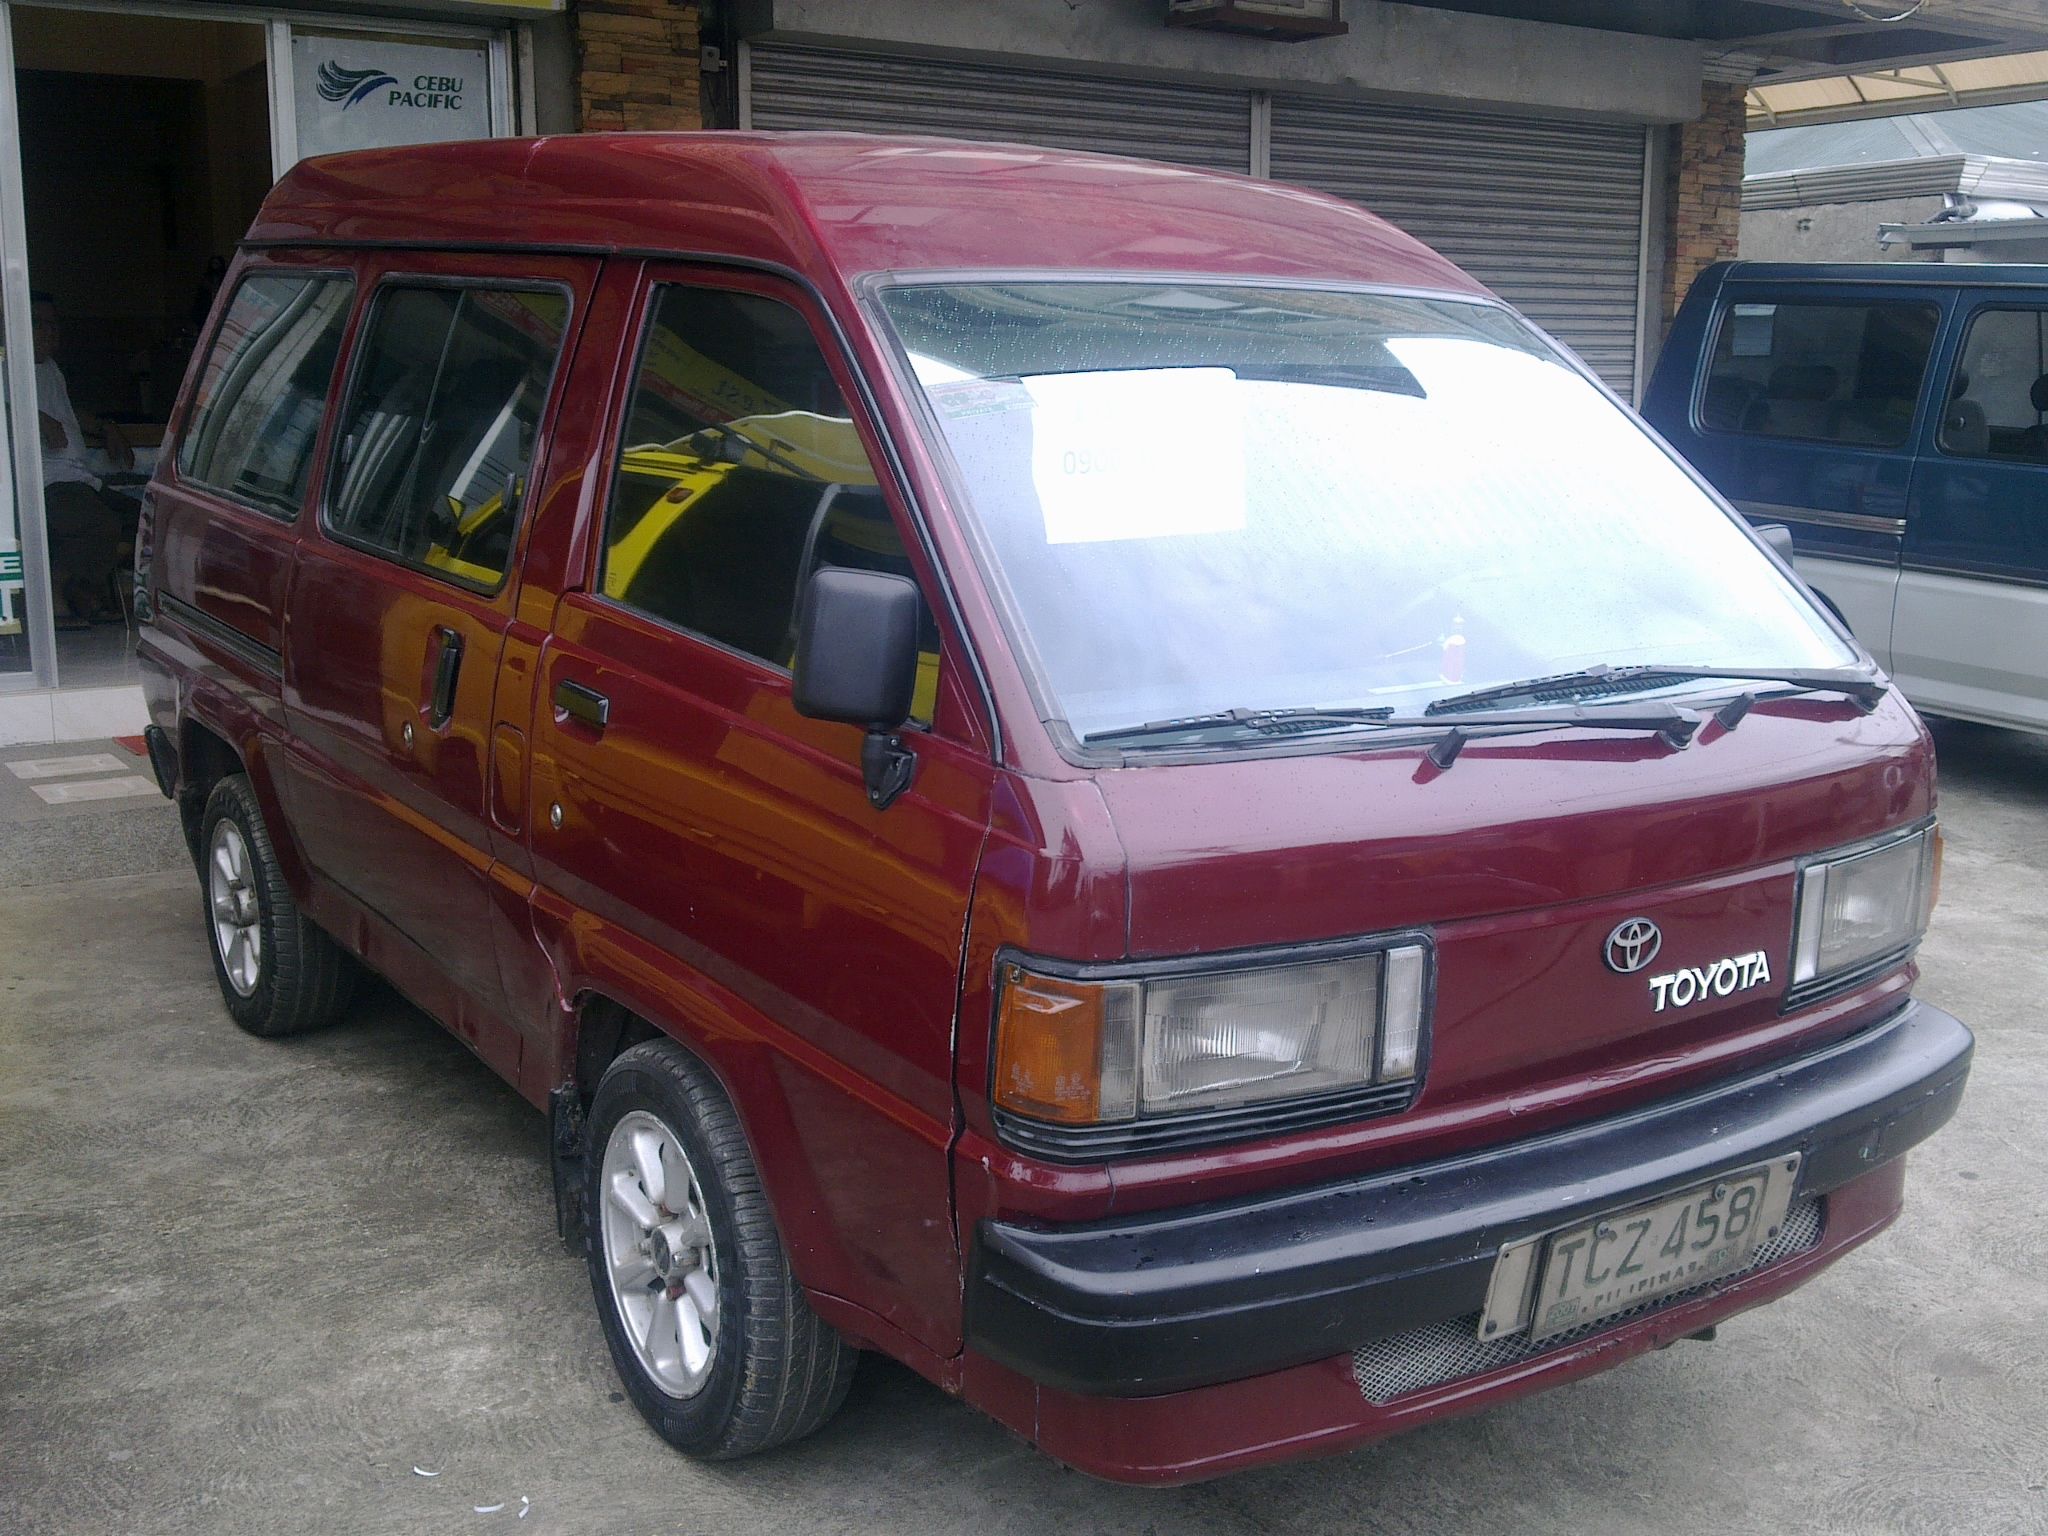 FOR SALE: TOYOTA LITEACE 1992